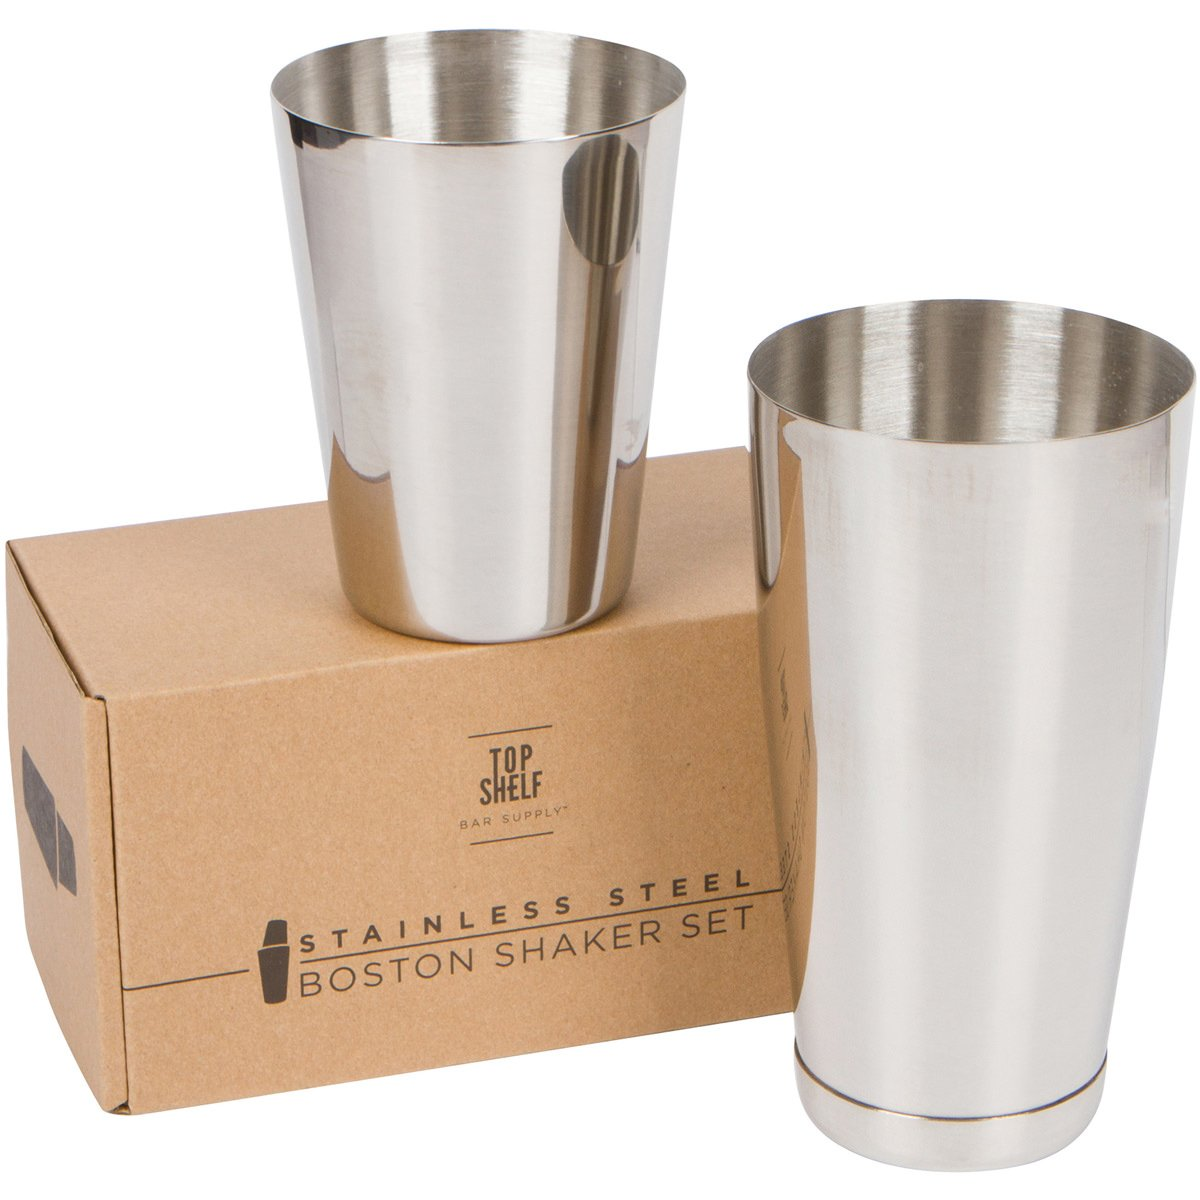 Stainless Steel Boston Shaker: 2-piece Set: 18oz Unweighted & 28oz Weighted Professional Bartender Cocktail Shaker by Top Shelf Bar Supply (Image #1)